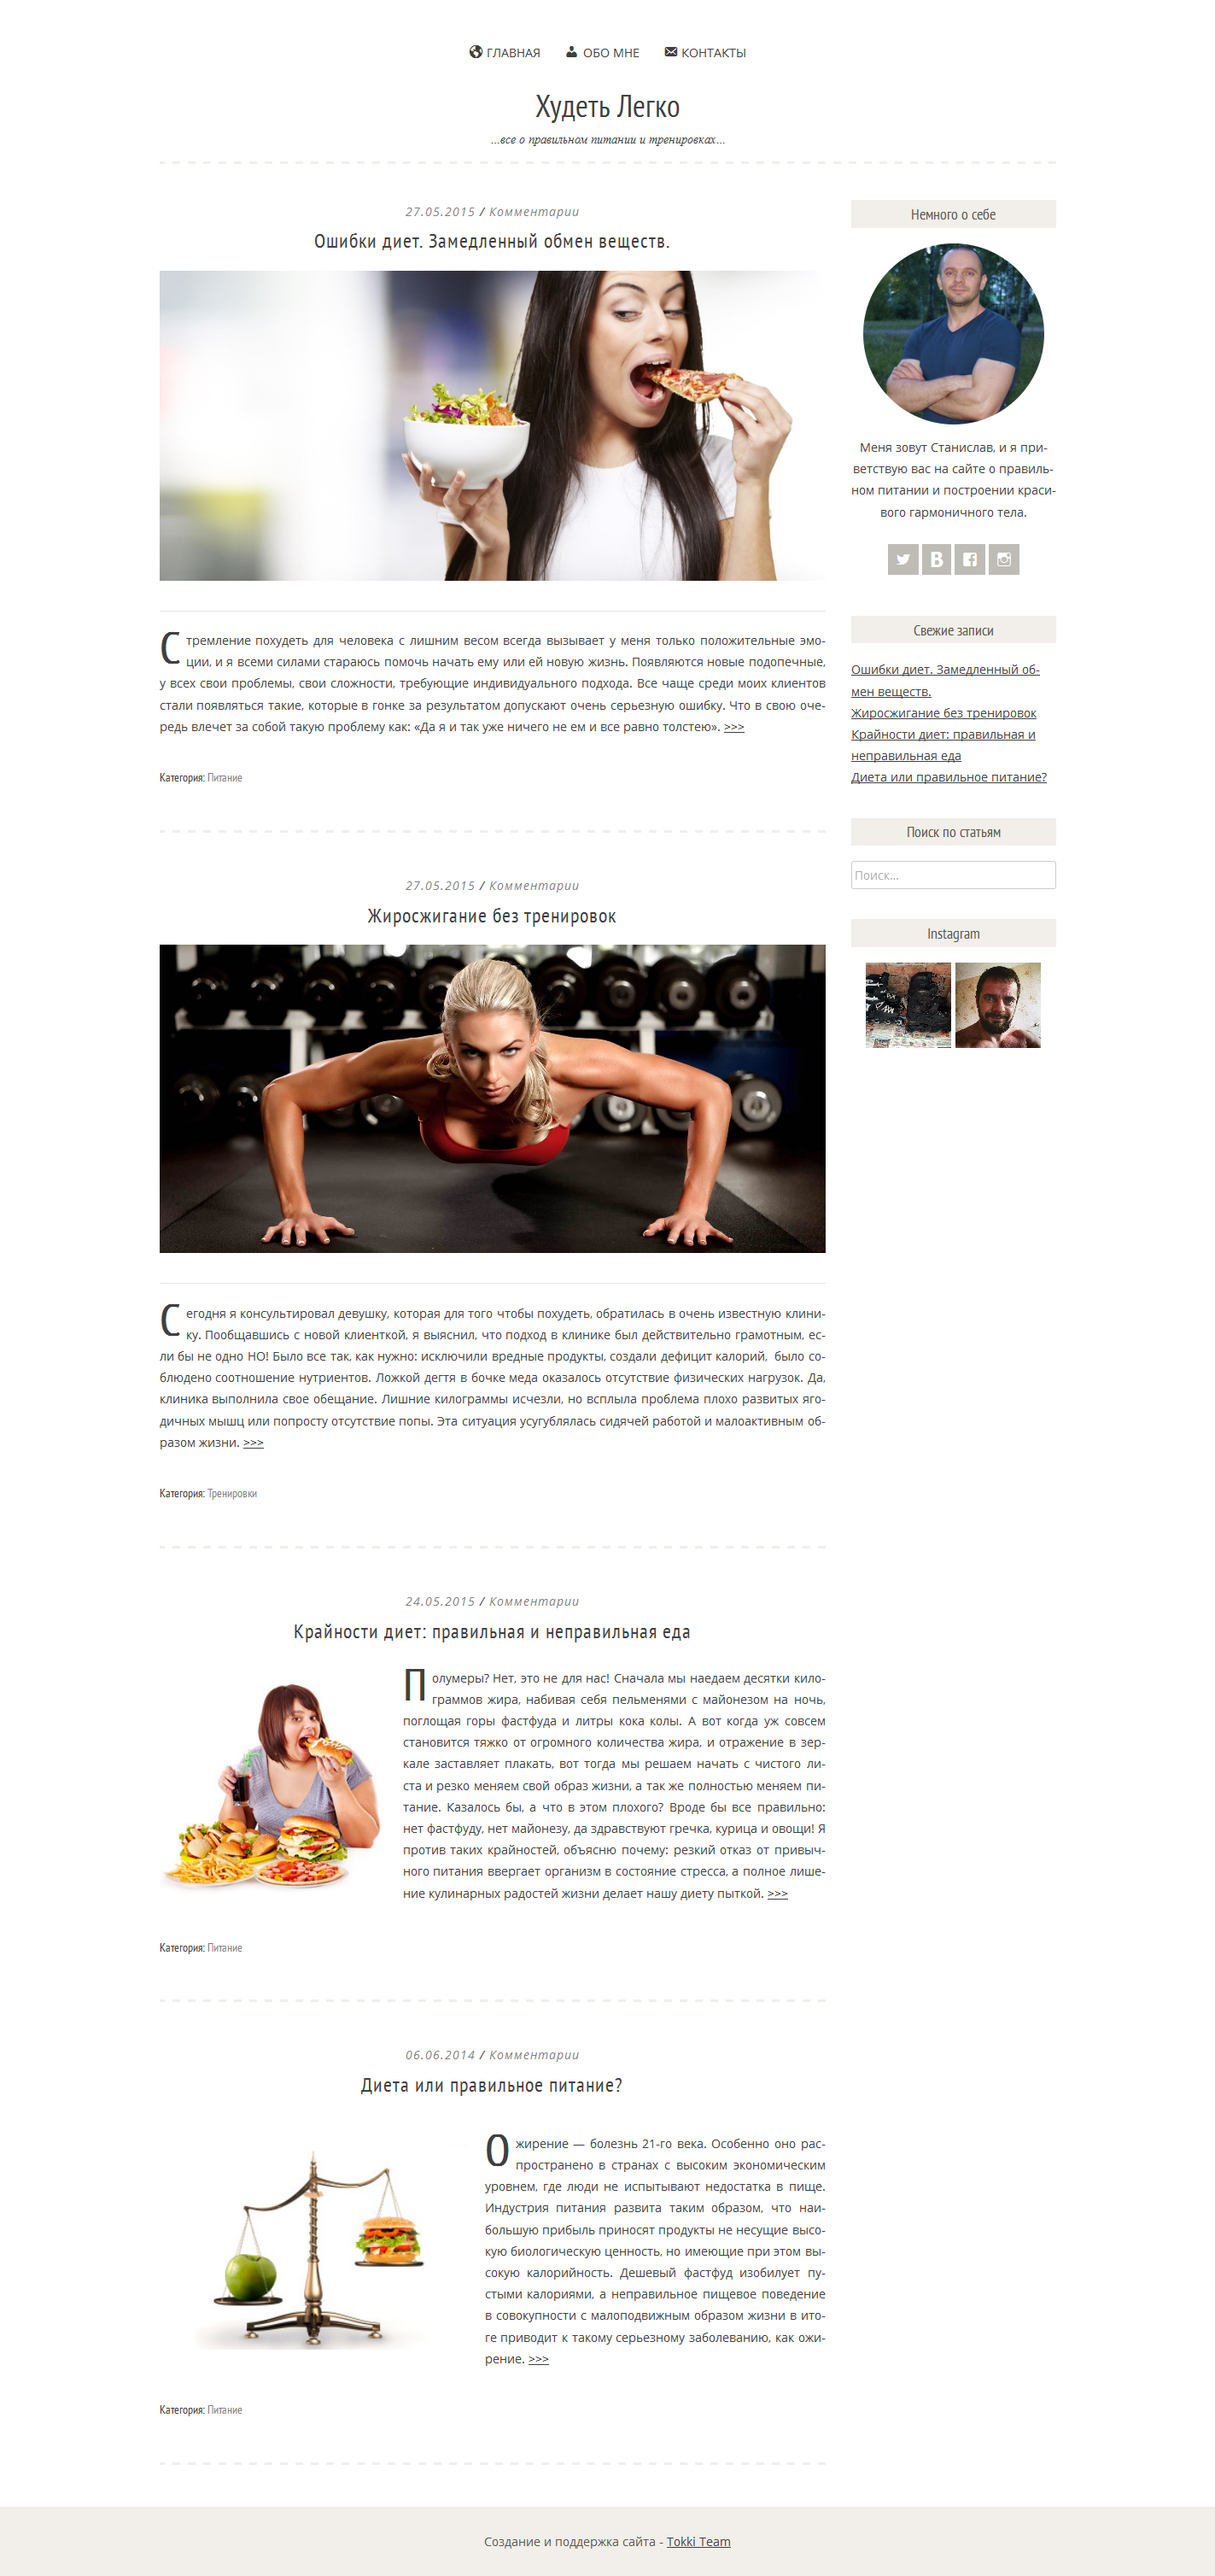 Lose weight easily - Stanislav's blog about proper nutrition and building a beautiful body. #tokki_team_portfolio, #webdevelopment, #webdesign